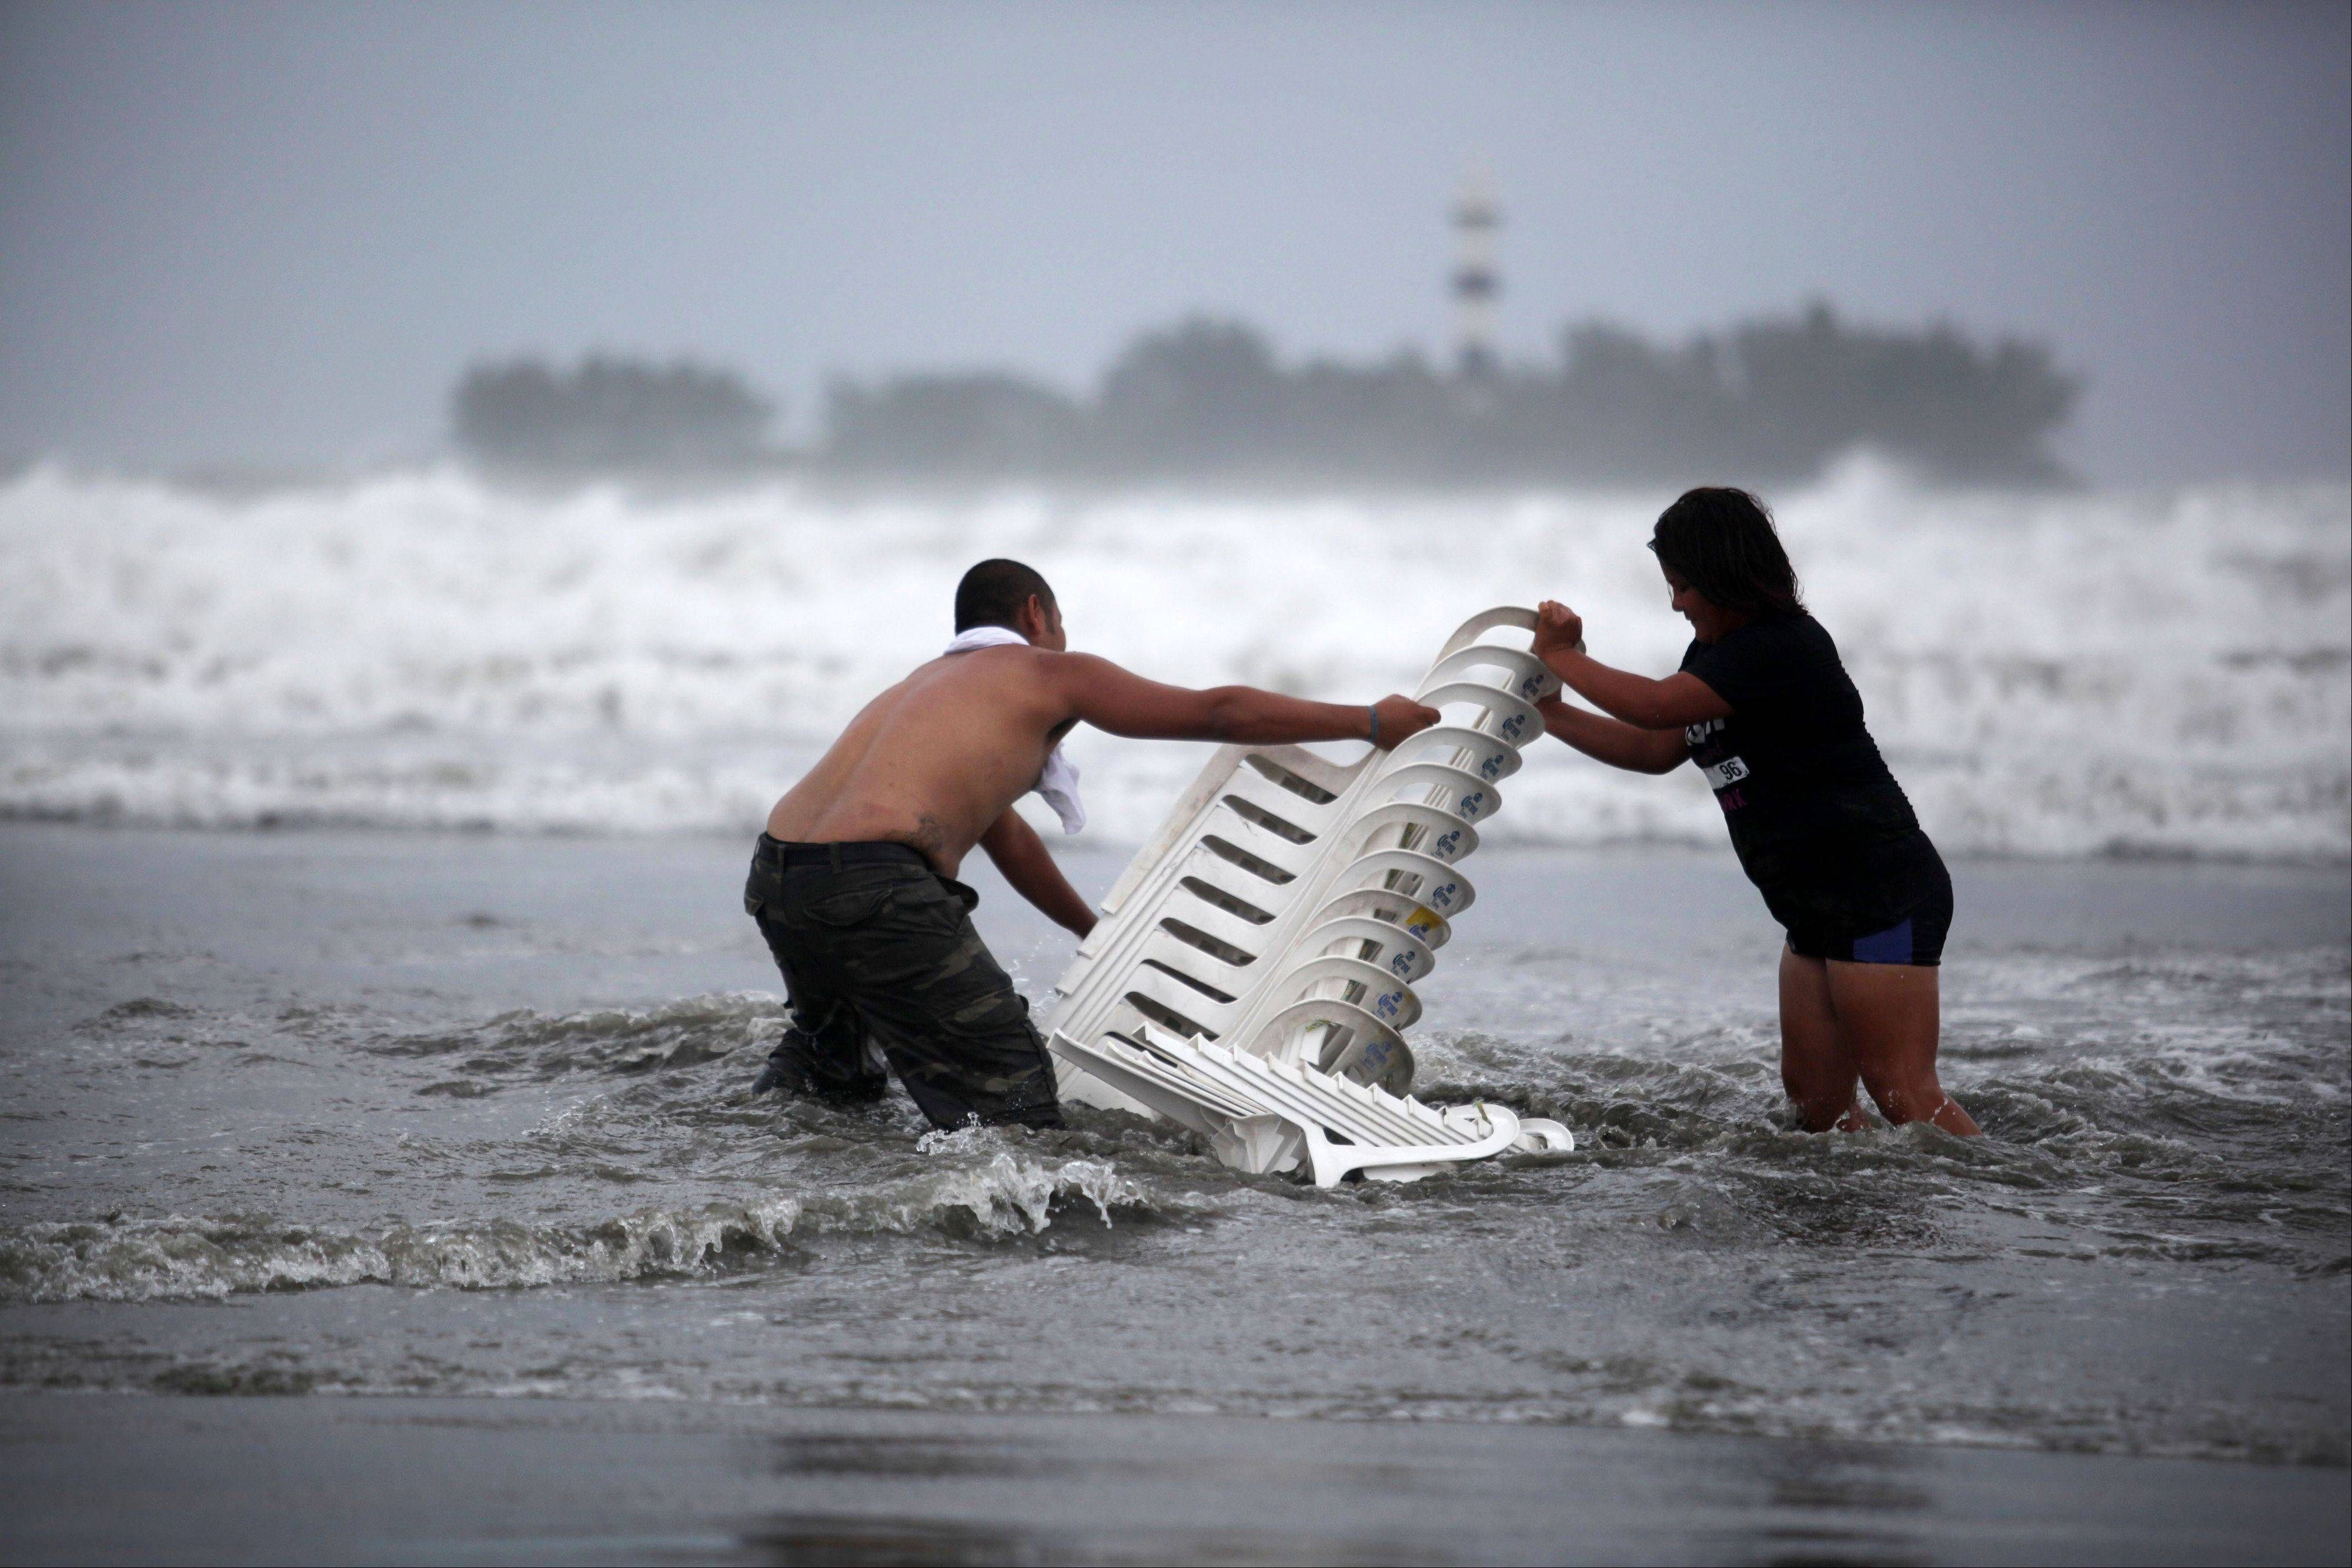 Vendors try to recover their chairs after high waves dragged their beach stalls into the sea in Veracruz, Mexico, Thursday Aug. 9, 2012. Tropical Storm Ernesto headed into Mexico's southern Gulf coast as authorities in the flood-prone region prepared shelters, army troops and rescue personnel for drenching rains.